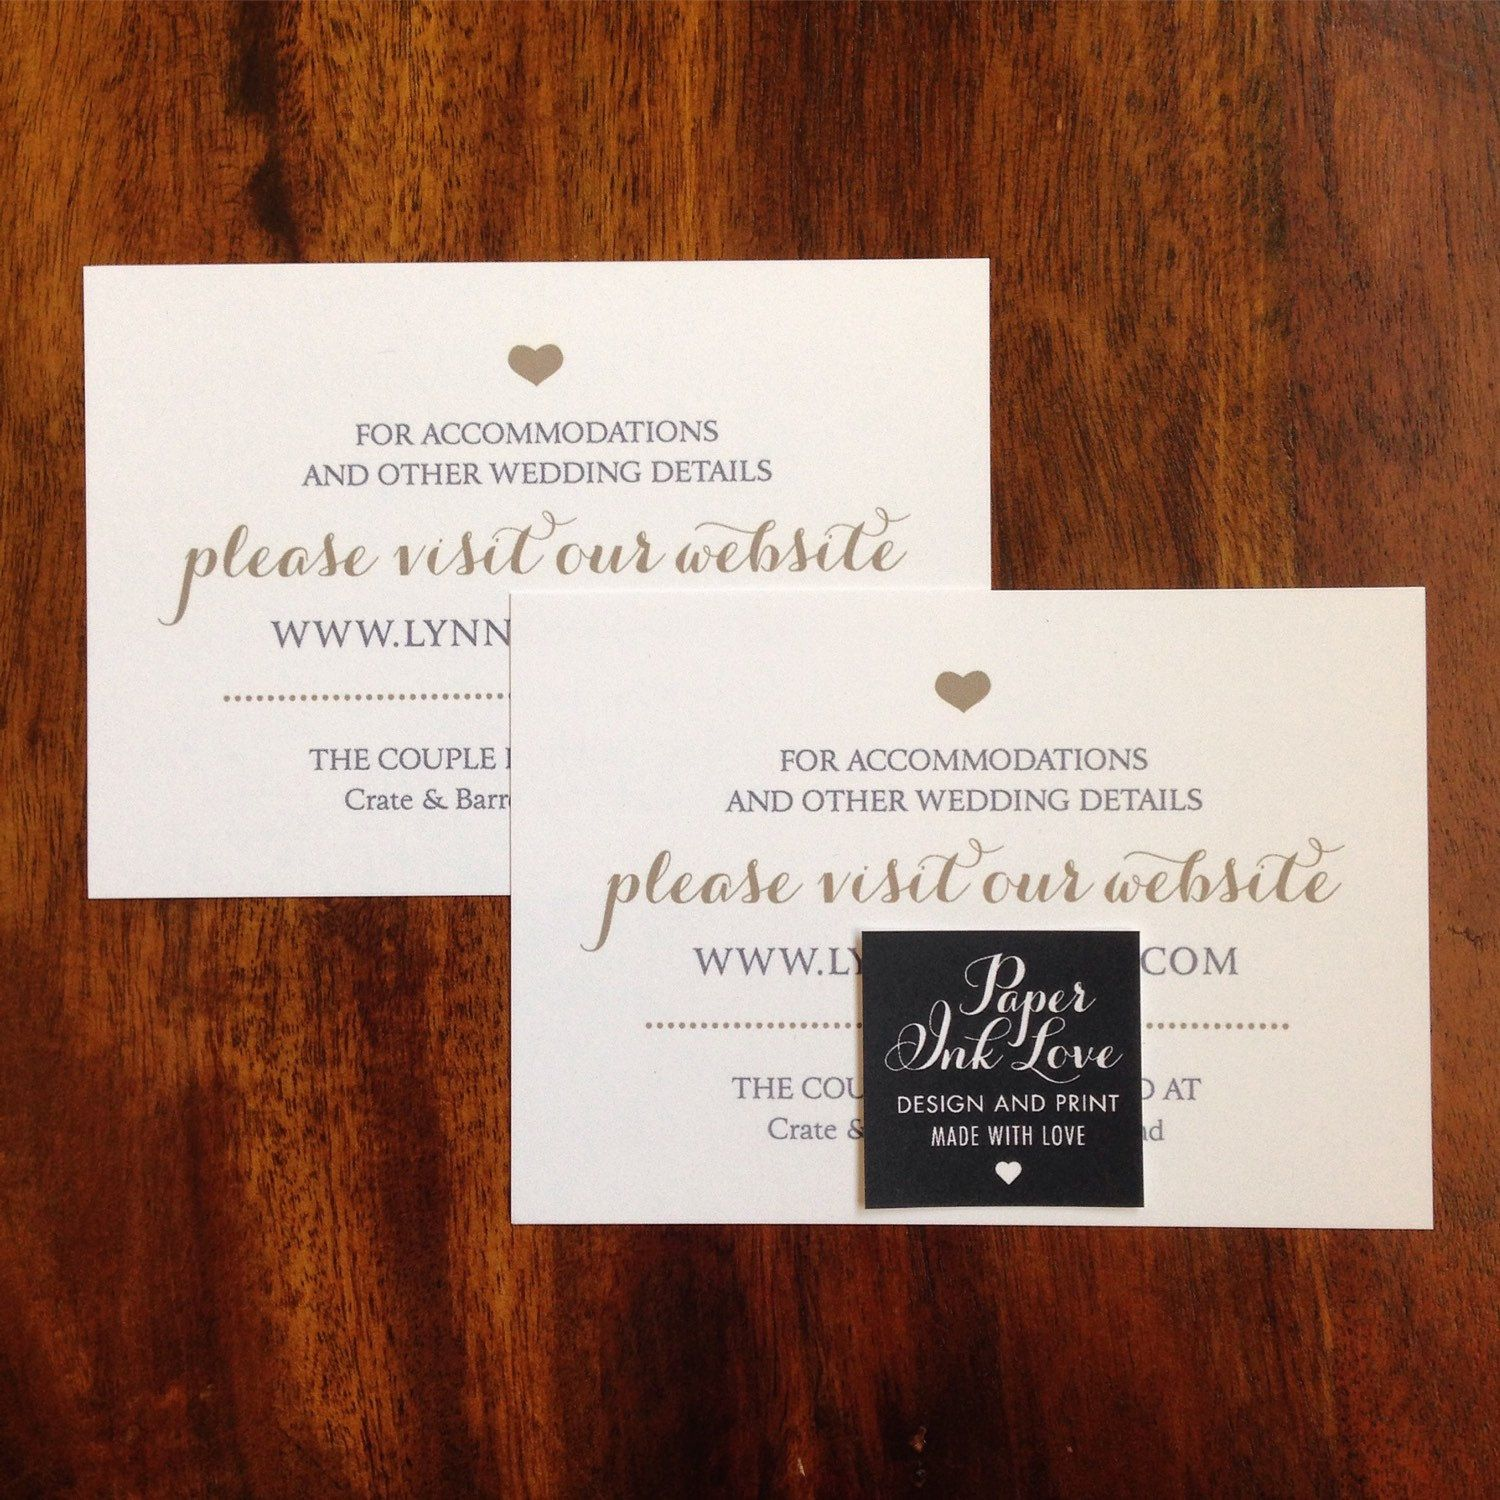 Wedding Website Enclosure Cards / Invitation Inserts With